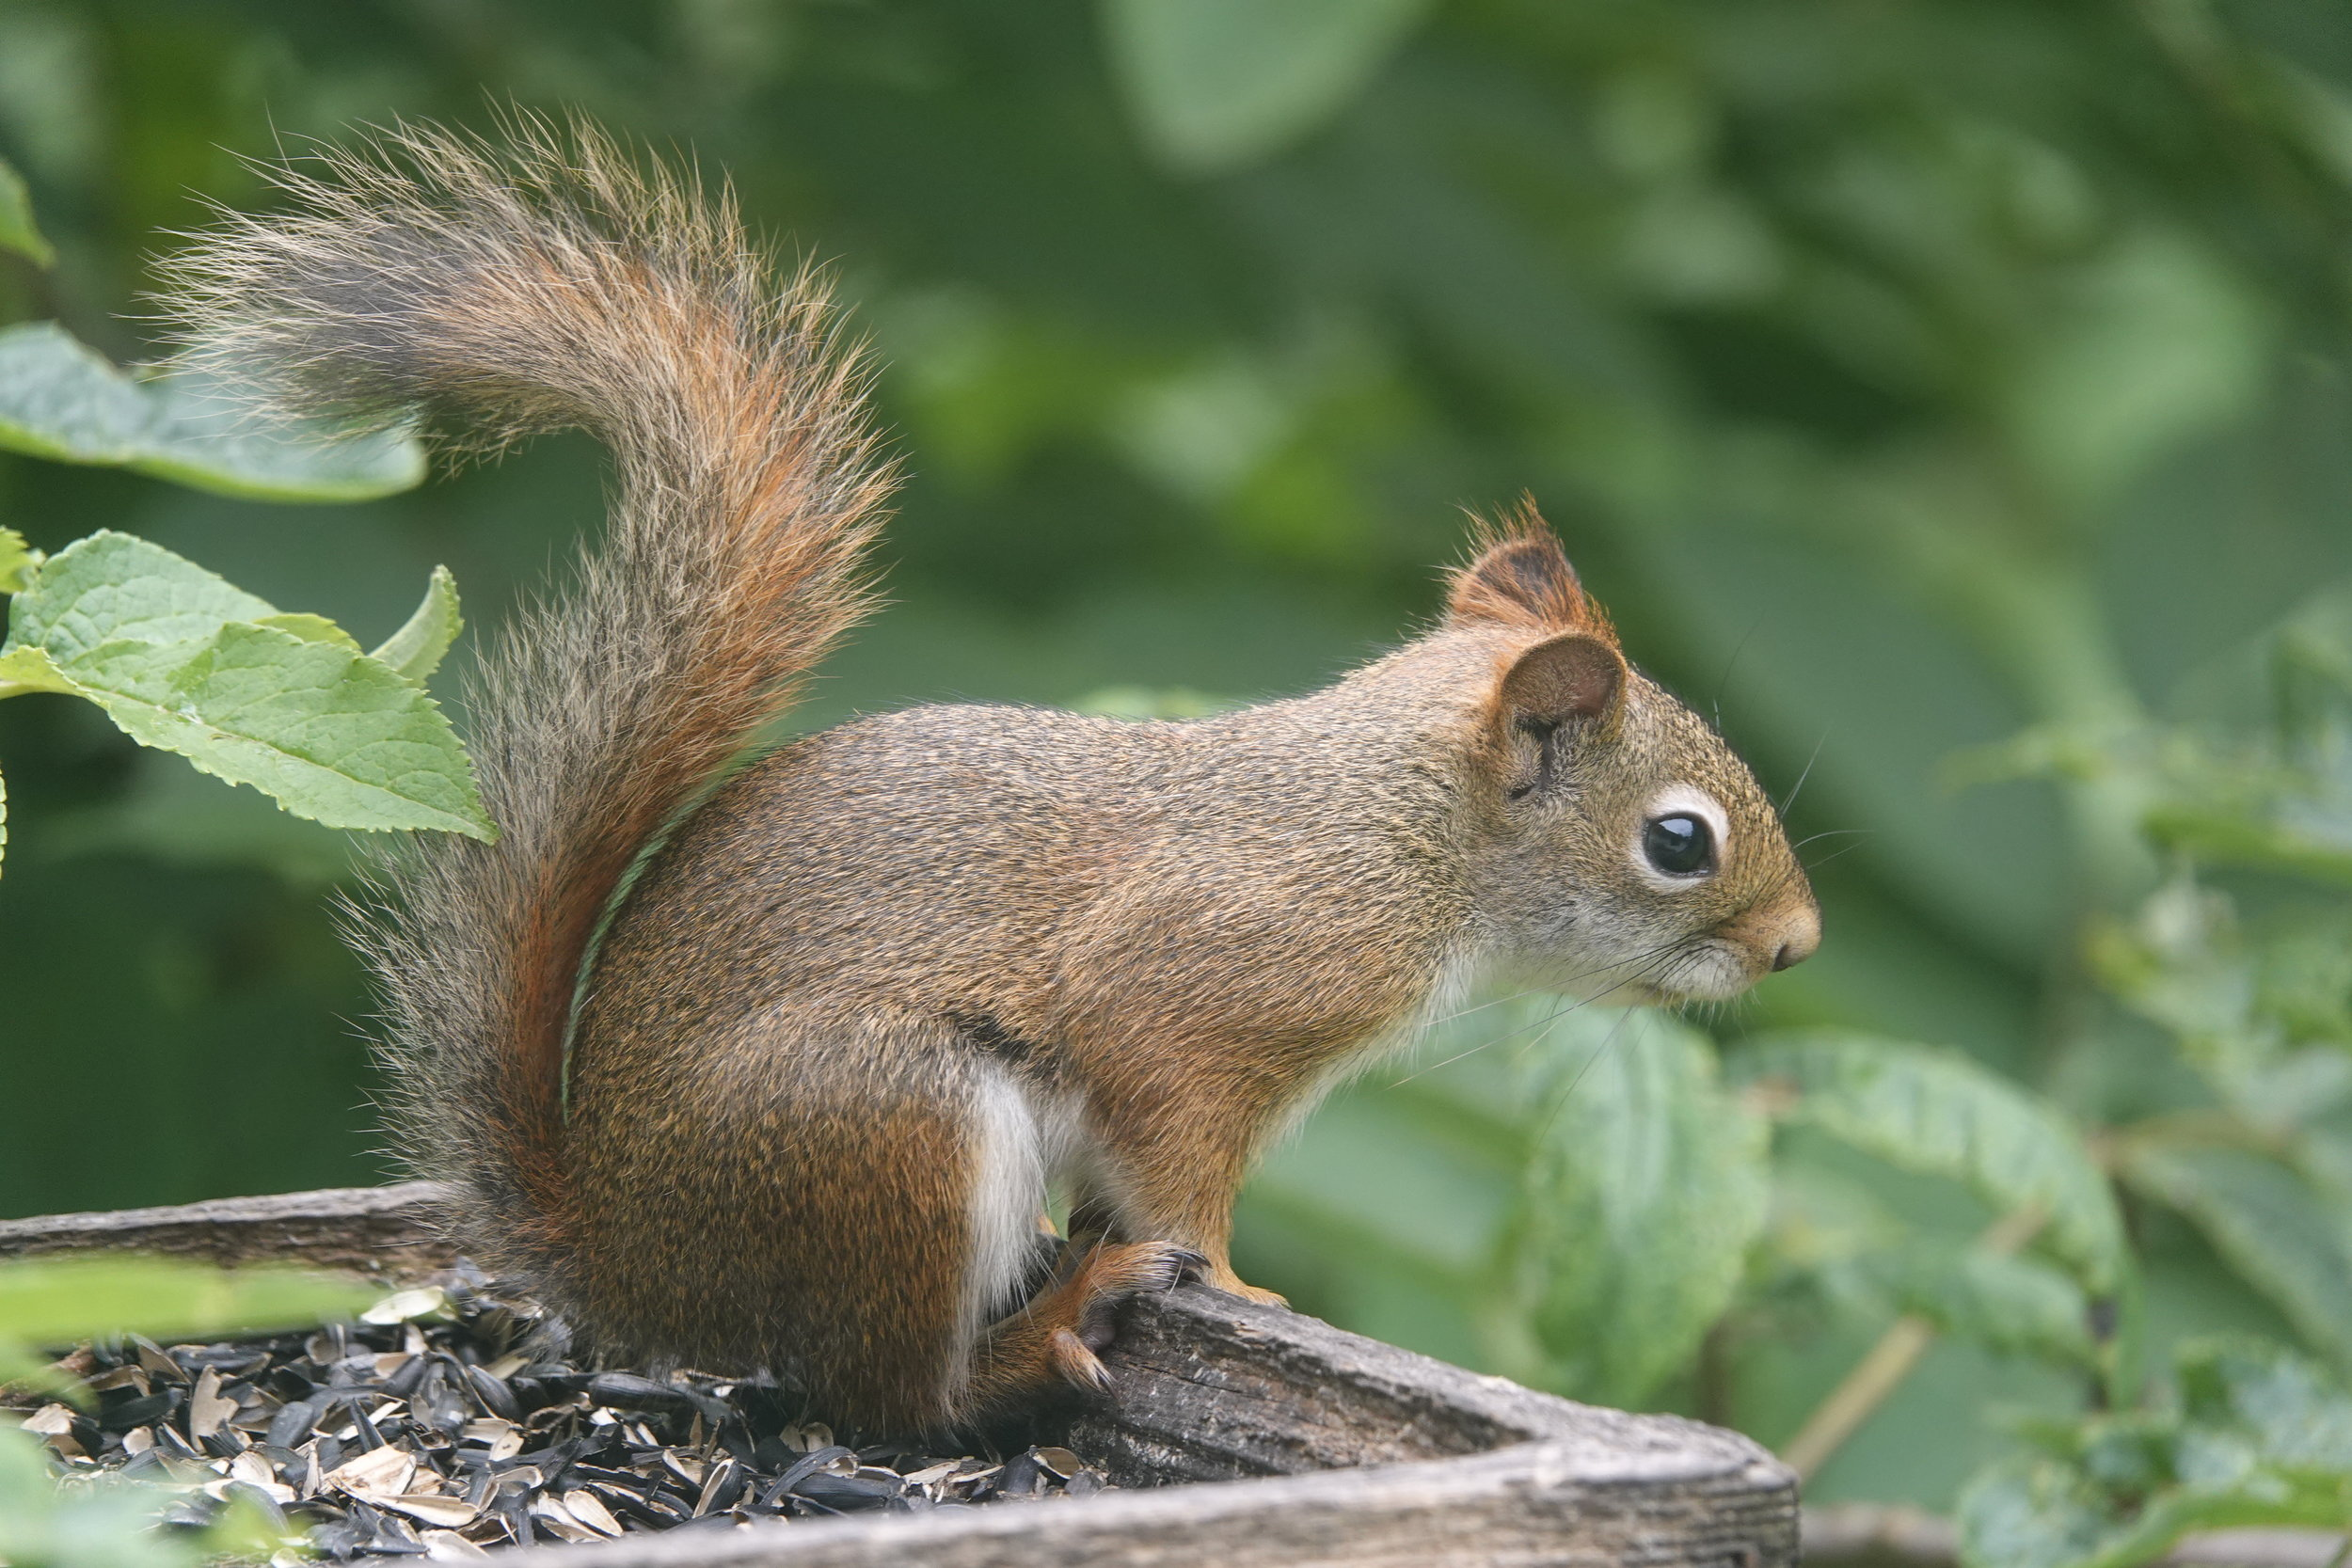 Some people claim that Cinderella's slippers were made of red squirrel pelts. That's difficult to prove.